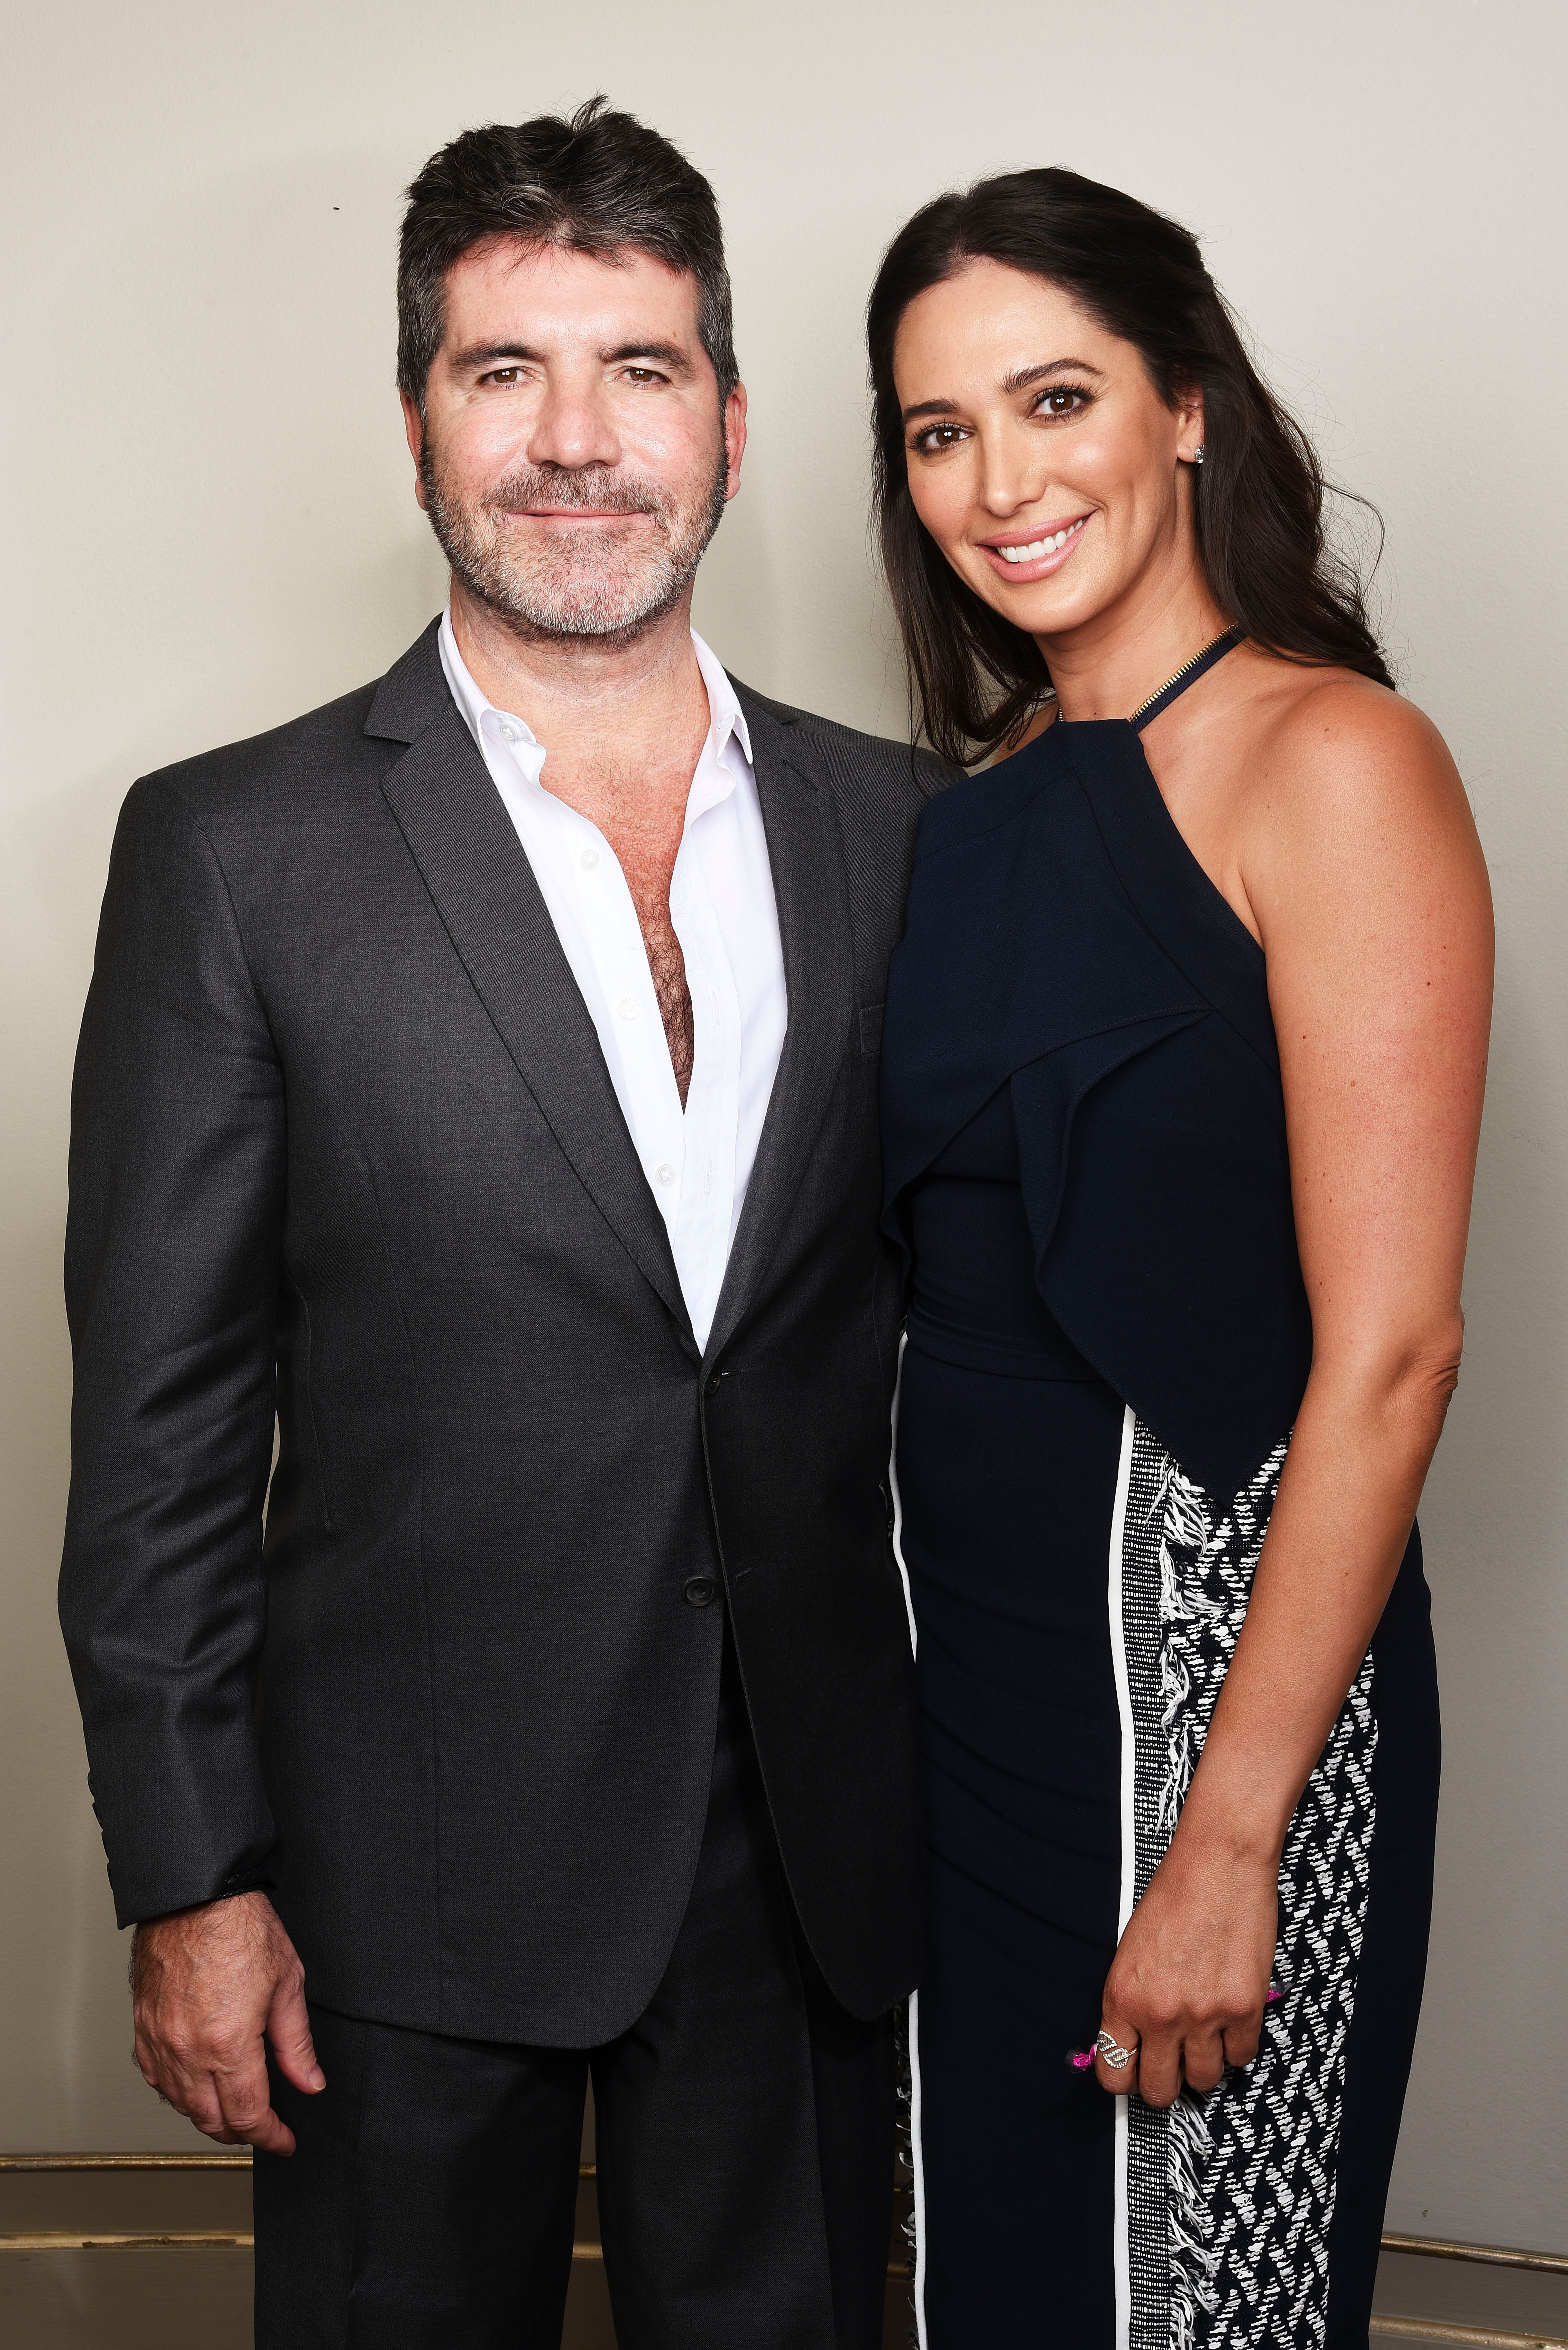 Simon Cowell and Lauren Silverman at a Shooting Star Chase Children's Hospice event on May 27, 2016, in London, England | Photo: Getty Images